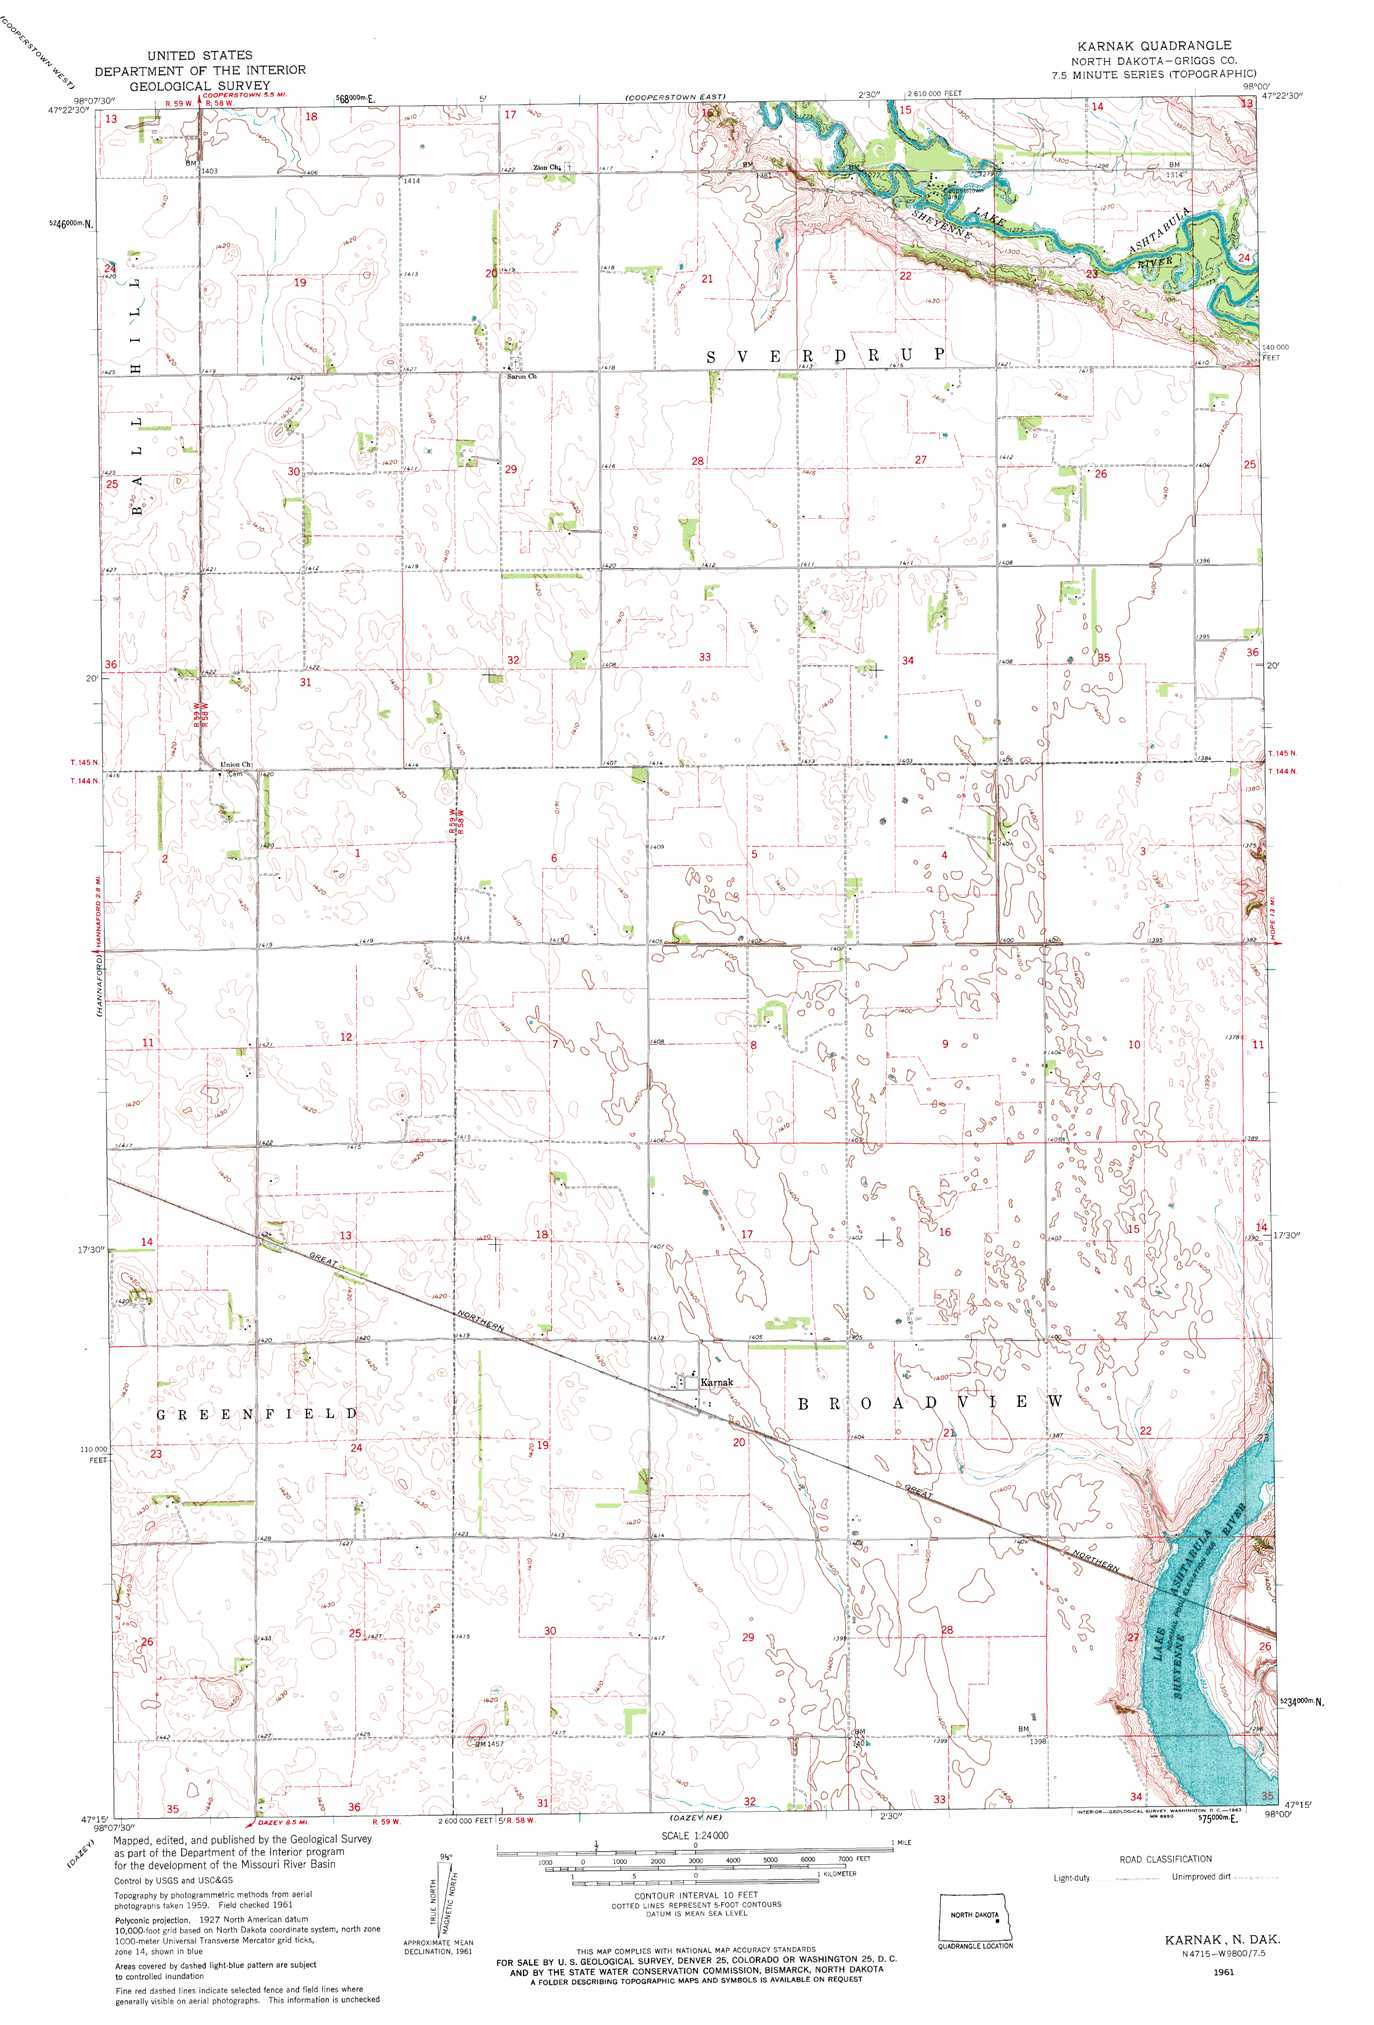 Karnak topographic map, ND - USGS Topo Quad 47098c1 on jonesboro map, medora map, aswan map, hillsboro map, polaris map, northstar map, sinai peninsula map, rosetta map, avengers map, enclave map, mandarin map, fairfield map, ramesseum map, giza map, temple of amun map, cyprus map, valley of the kings map, hamilton map, pithom map, homer map,